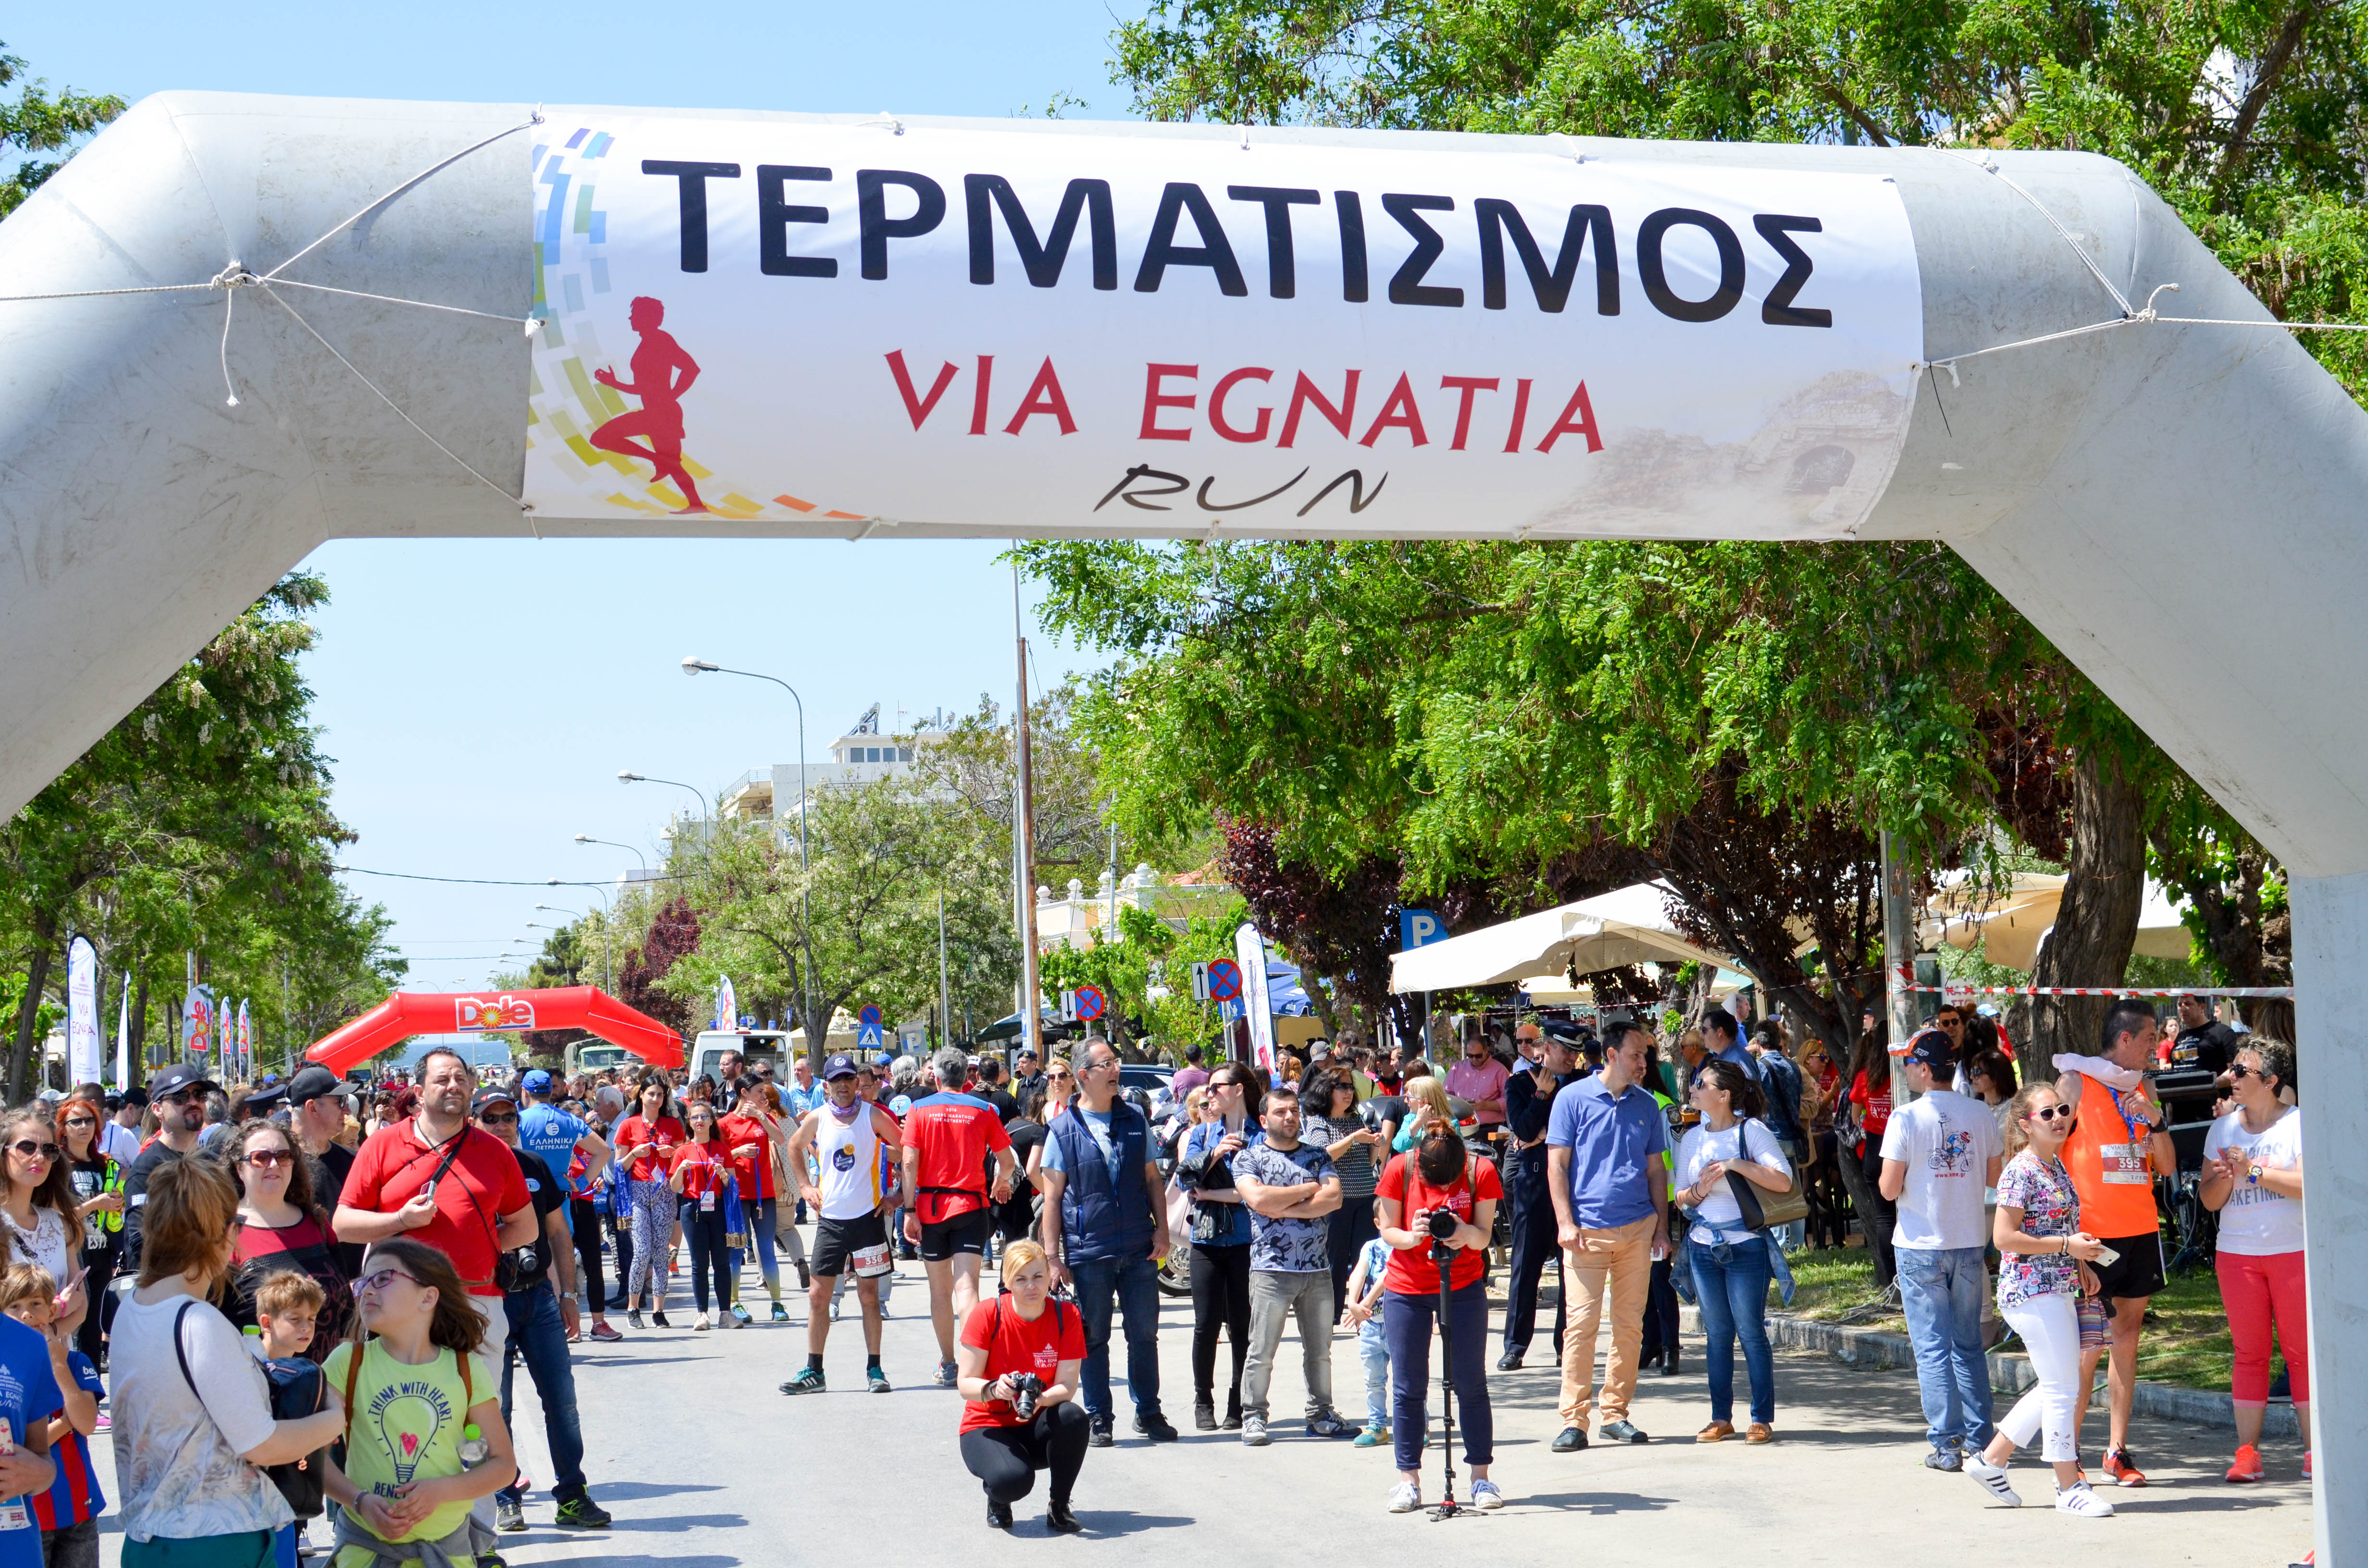 -via egnatia run